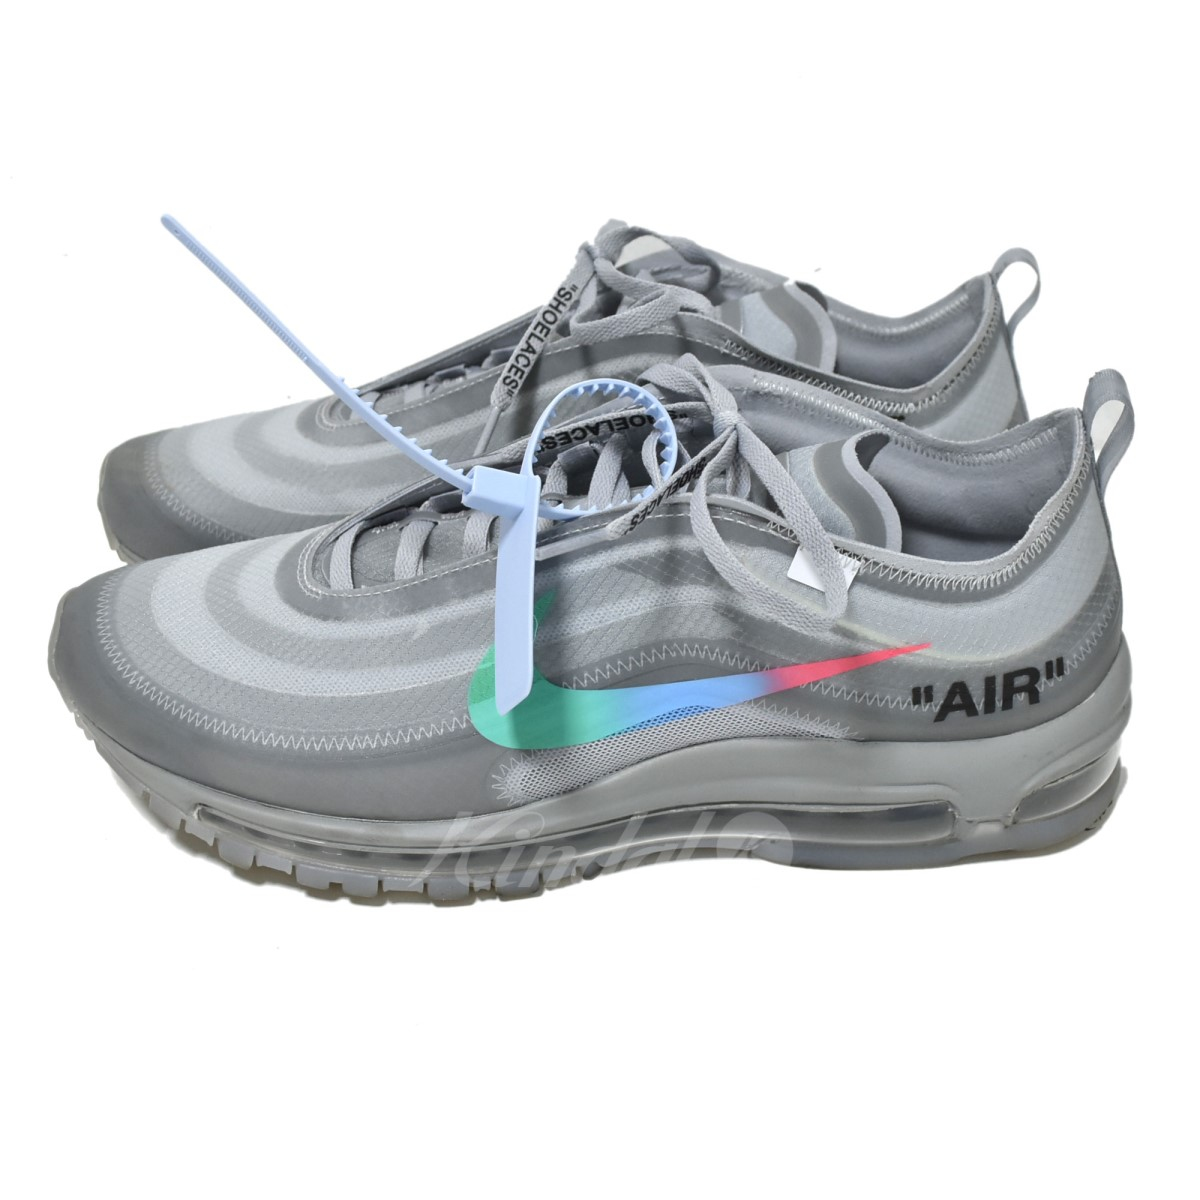 san francisco 3633b 654ca NIKE X OFF WHITE AIR MAX 97 Menta sneakers gray size: 29 0 (Nike off-white)